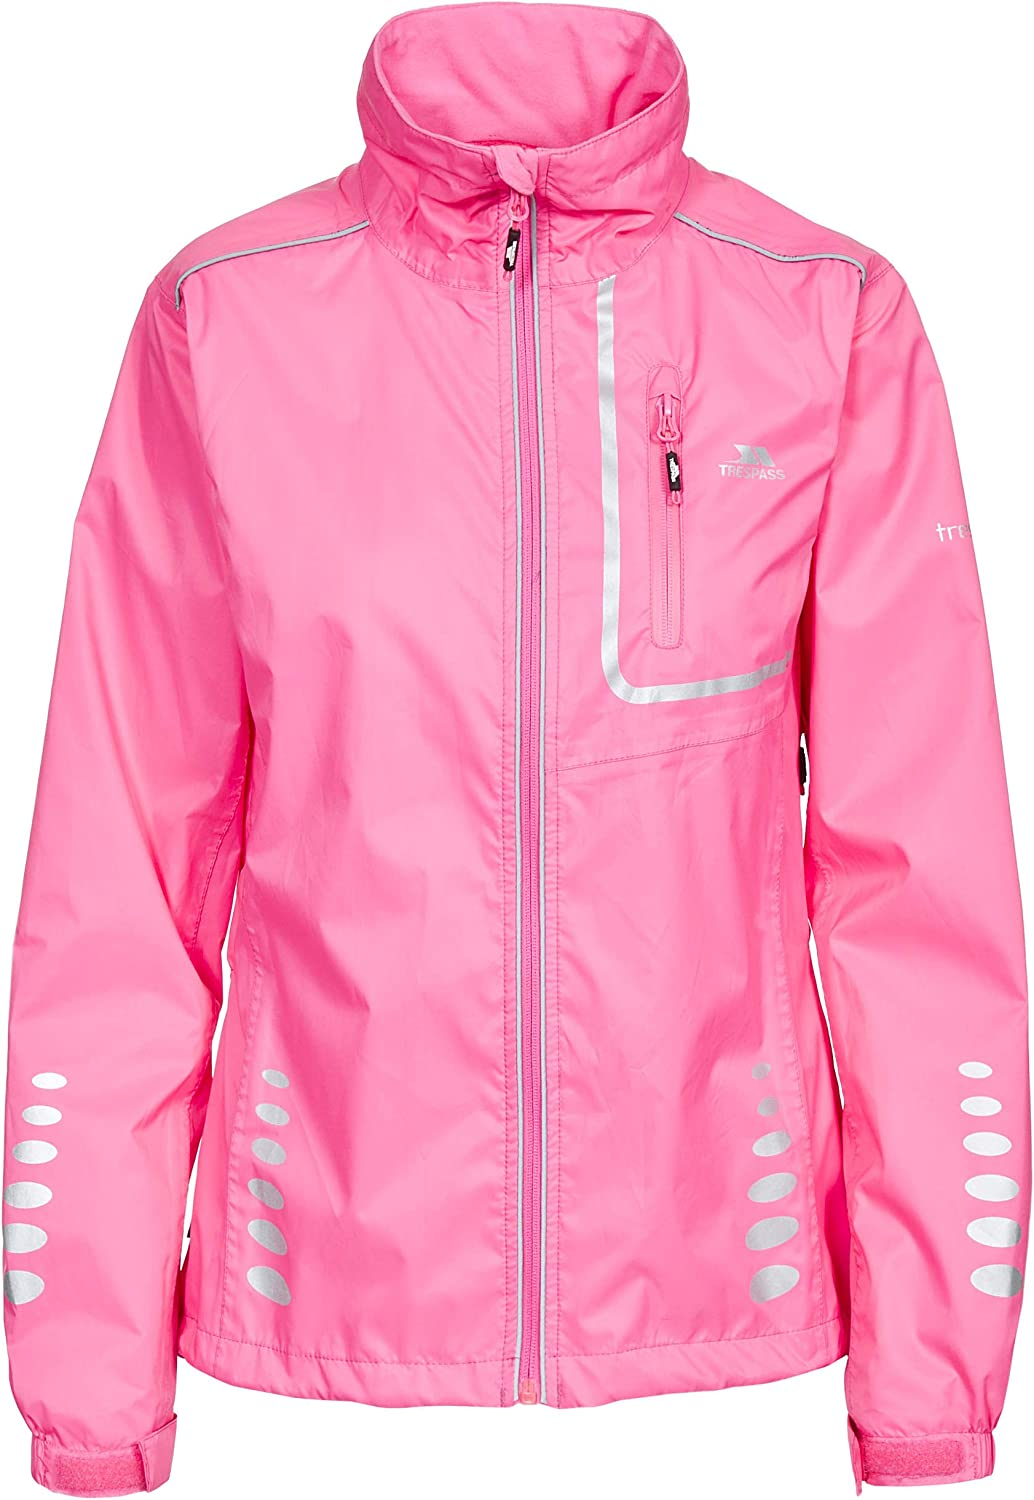 Trespass Fairing Womens Waterproof Cycling Jacket Lightweight Running Coat